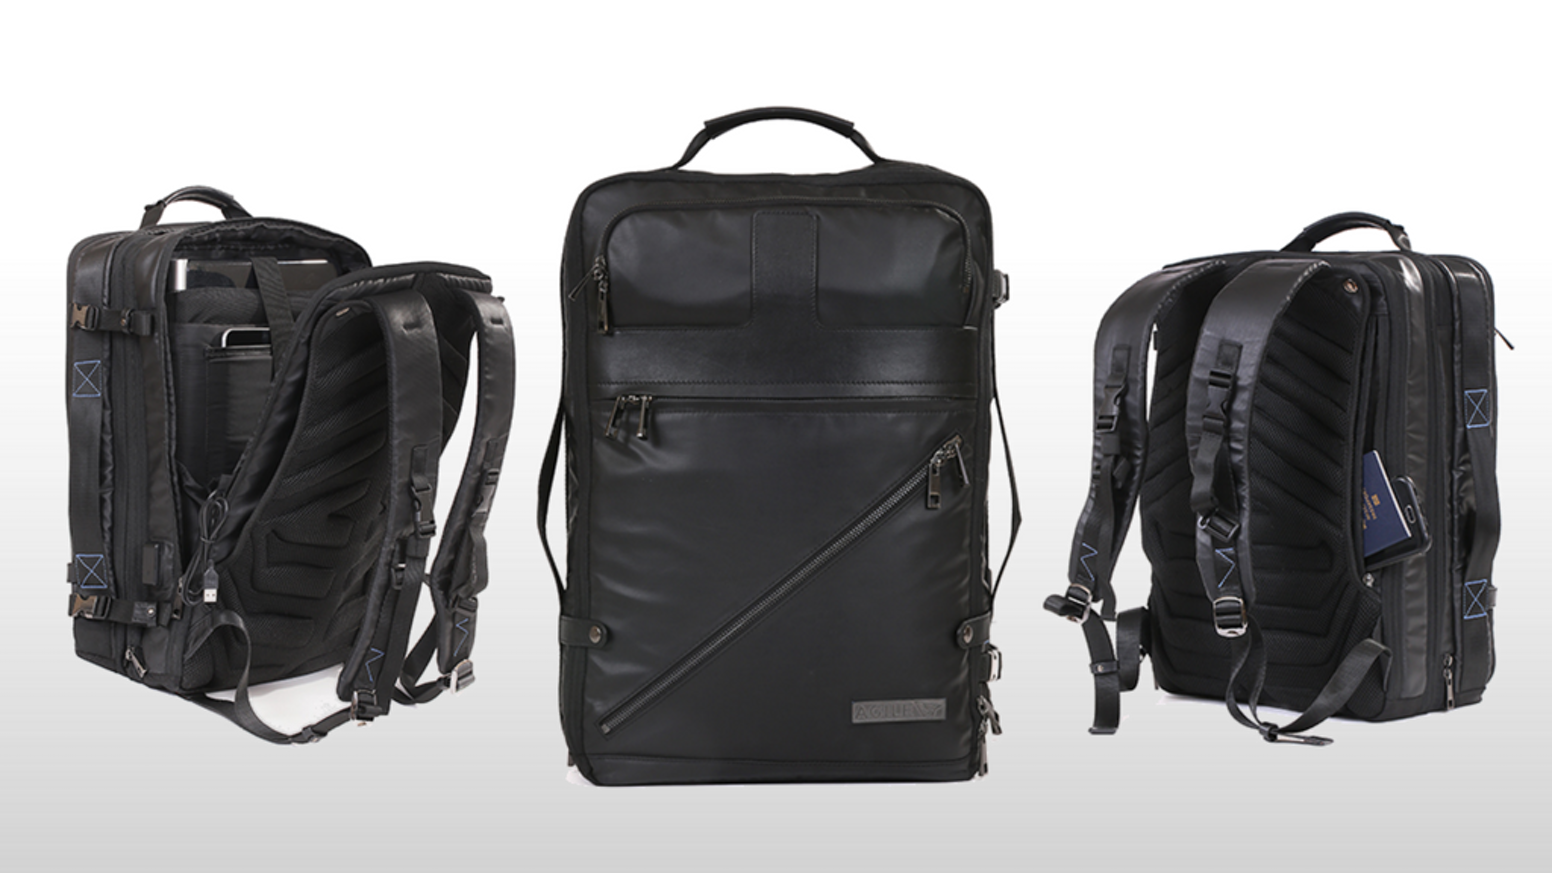 147ab78bb9959b The ultimate premium backpack for the everyday carry or weekend trips.  Crafted with only the